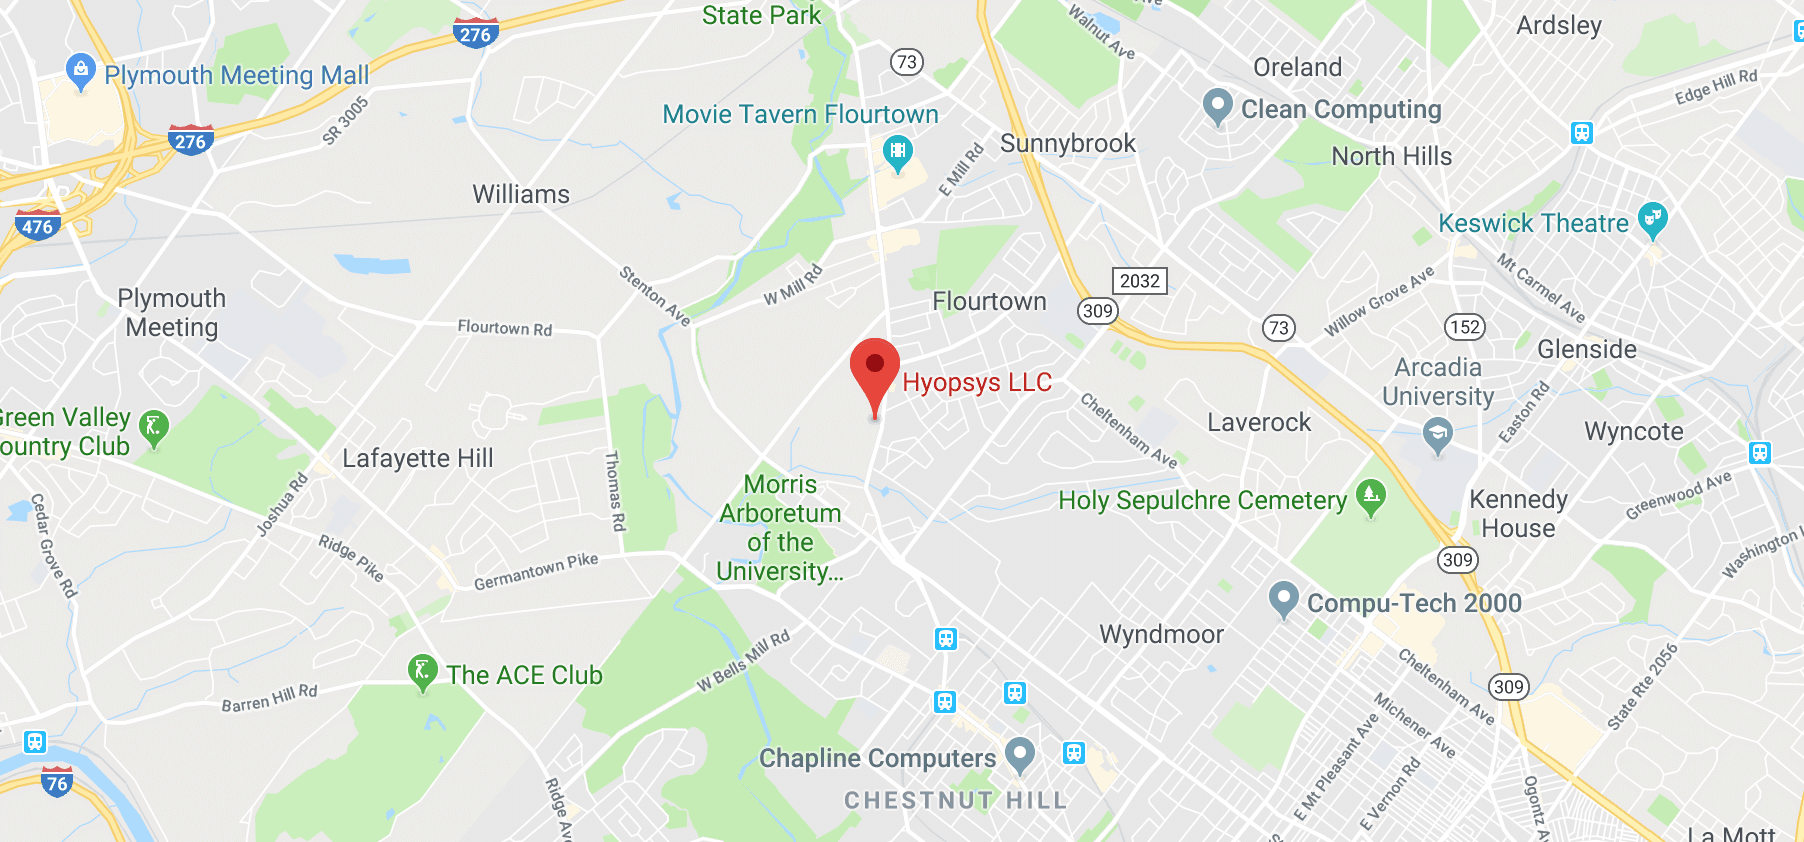 Google Maps With Hyopsys LLC Location Marker